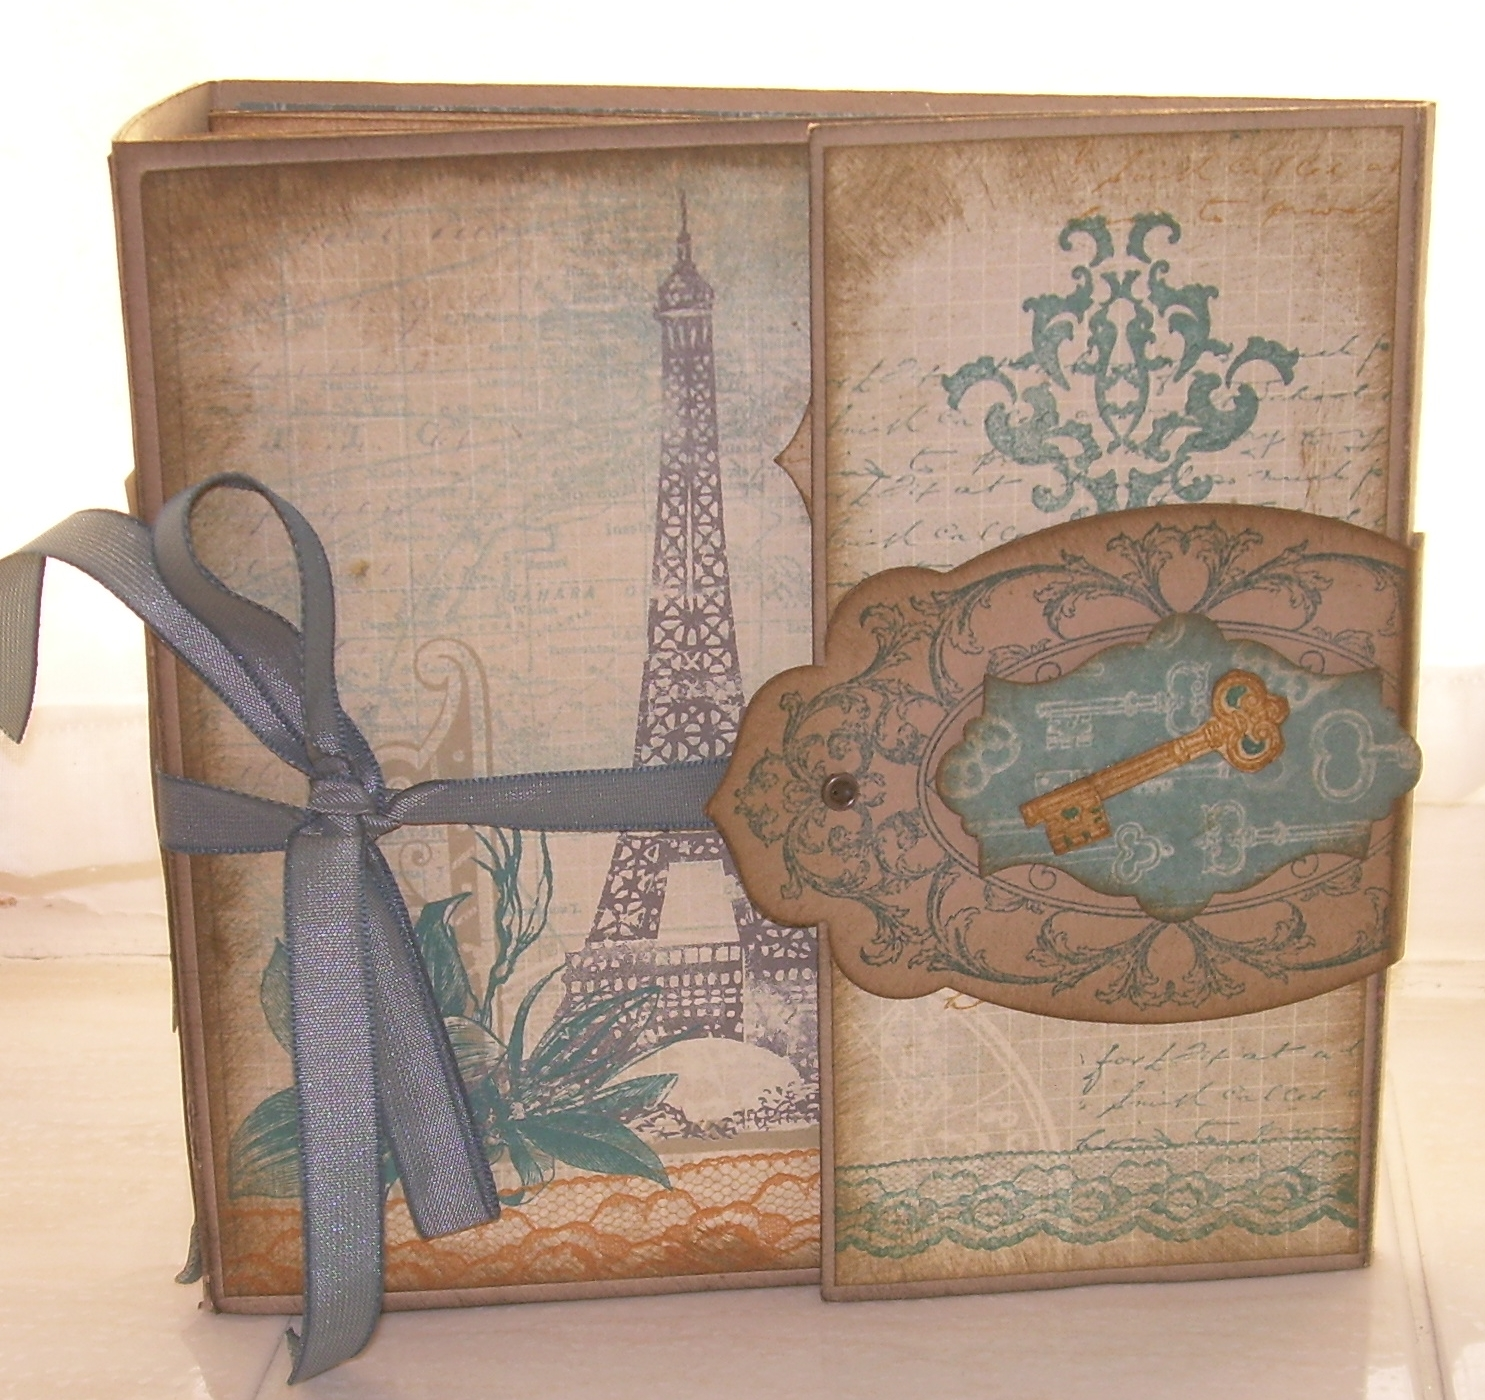 How to make scrapbook vintage - This Scrapbook Apx 6 X 6 Is Made From Scratch Using Cardstock And Paper And Was A Labour Of Love To Design I Really Never Expected To Teach It But